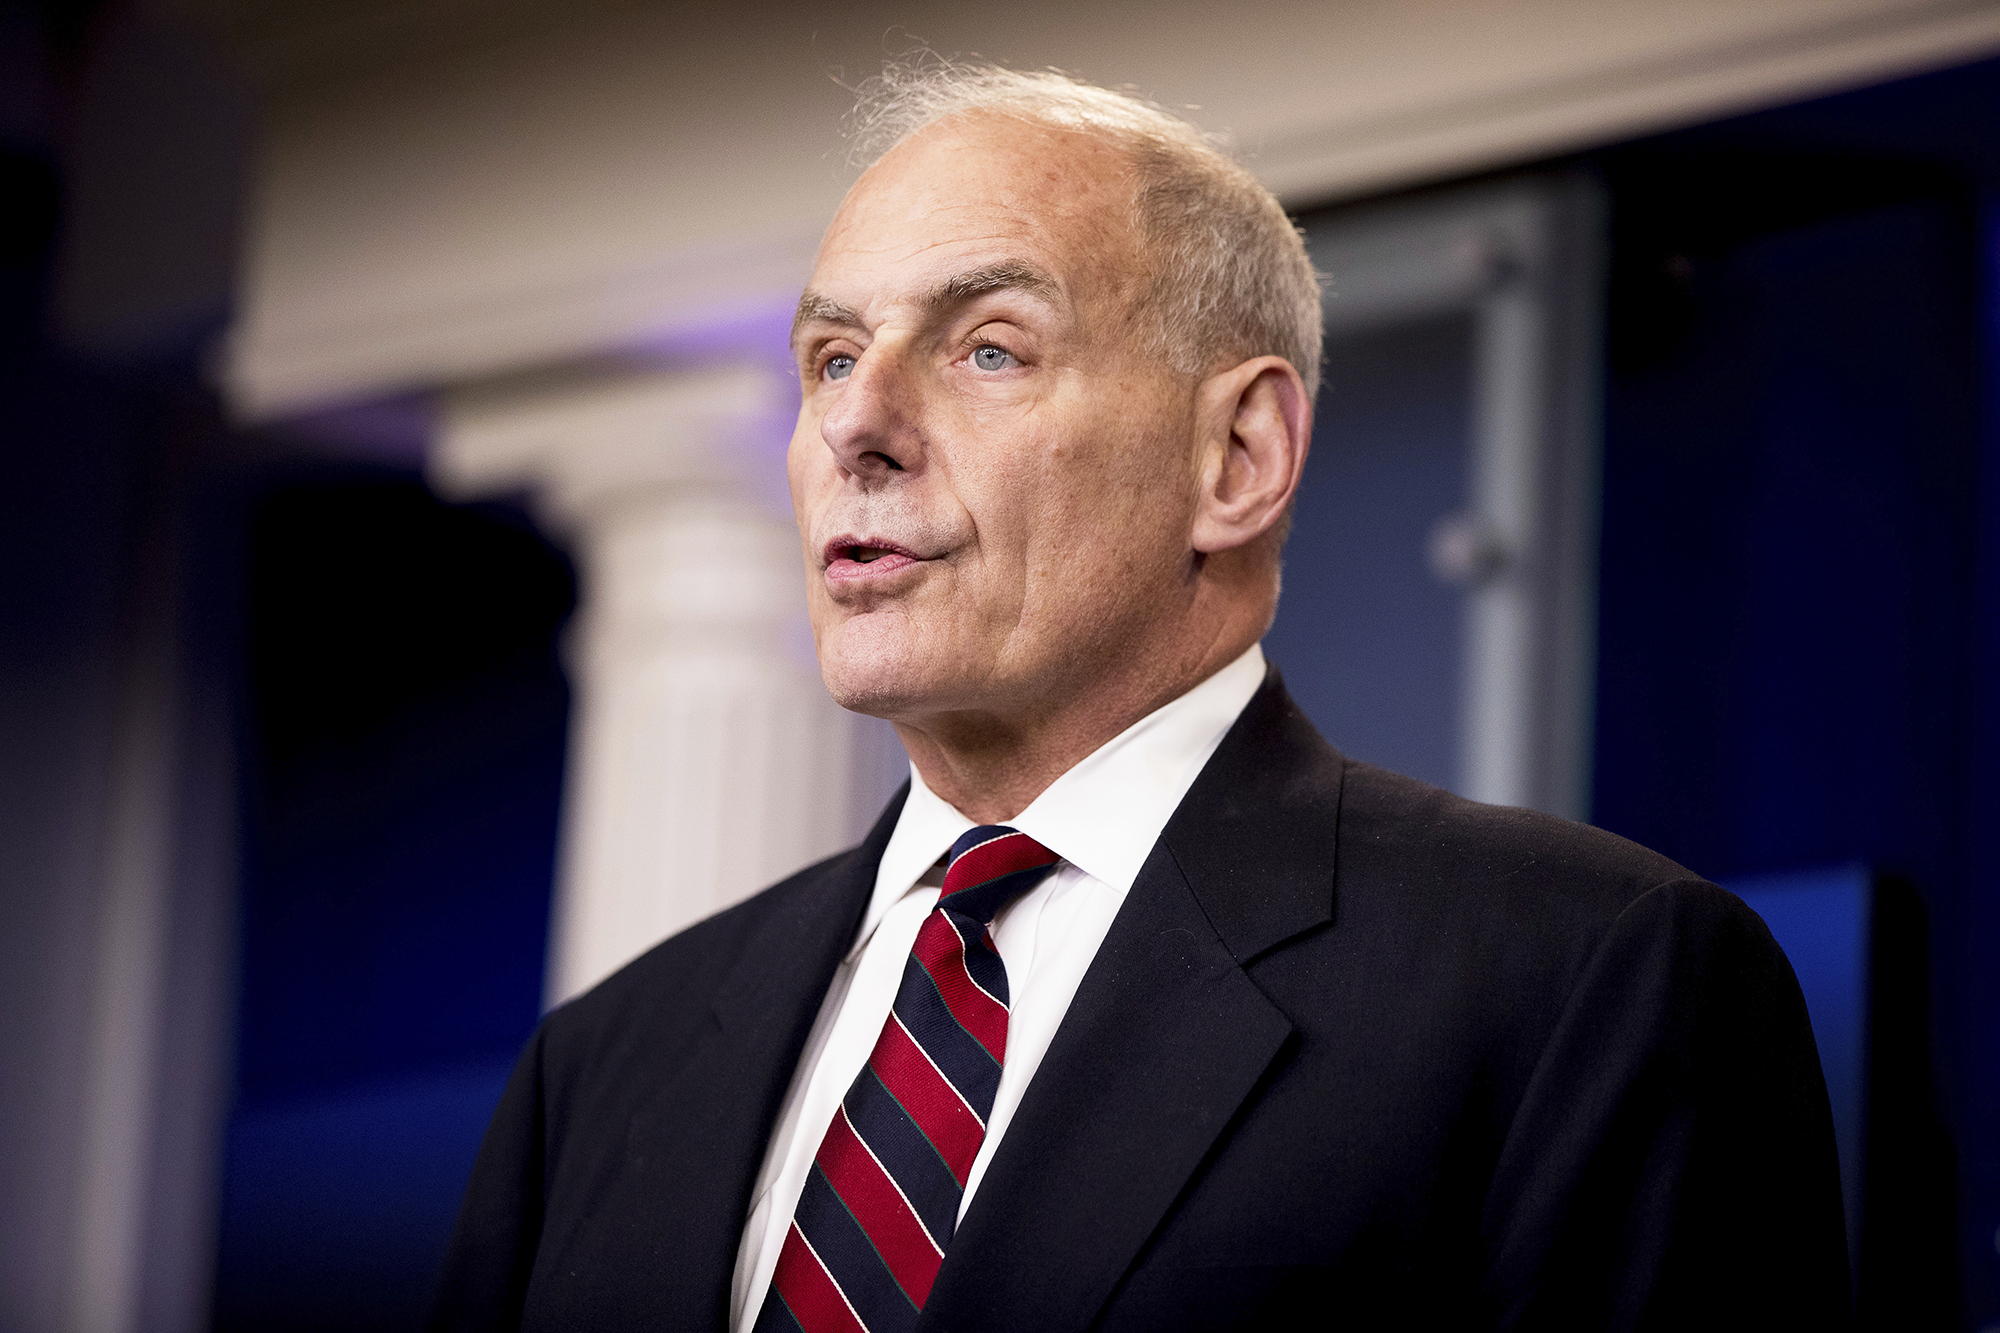 Homeland Security Secretary John Kelly talks to the media during the daily press briefing at the White House in Washington, D.C., on May 2, 2017.